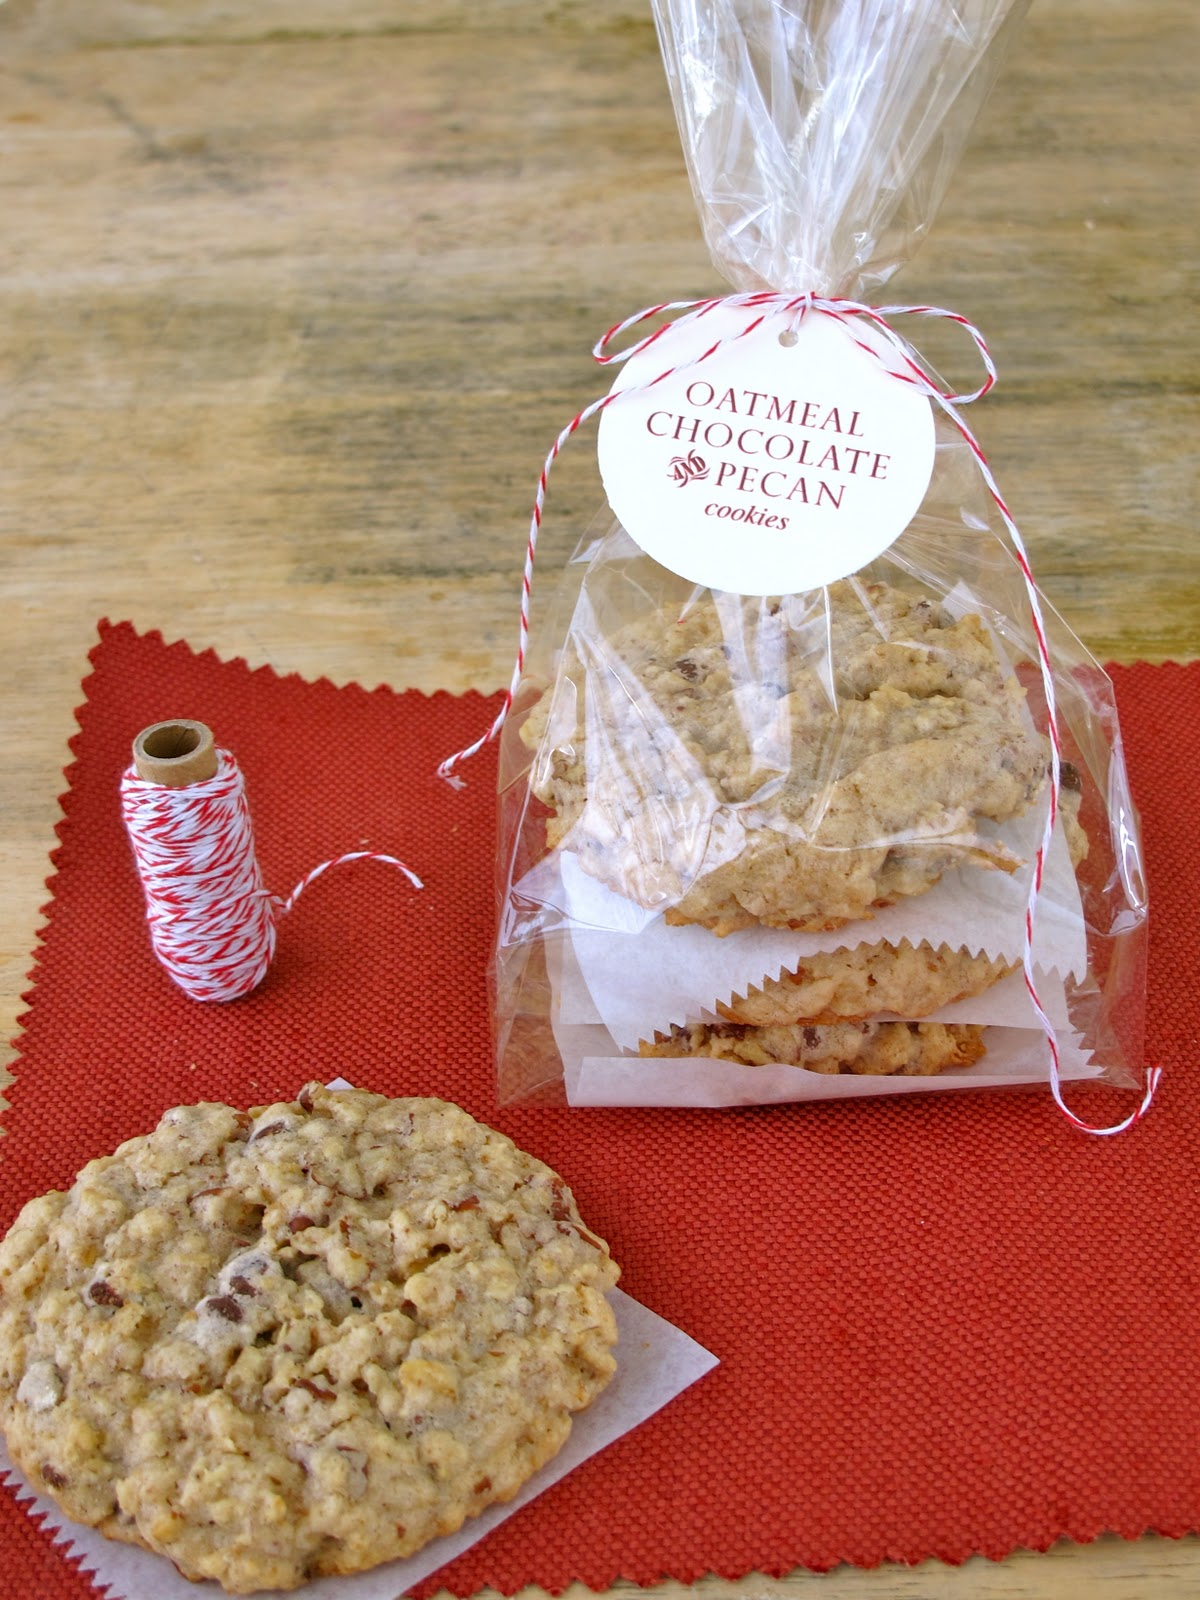 Food gifts are always a favorite, and beautiful packaging makes them so fun! You don't have to be a master baker to invent a thoughtful food gift. (If the packaging is creative, who will even notice if the cookies aren't homemade!?) We've made it easy for you to amp up your cookie-gifting game with these 30 cute cookie wrapping ideas.